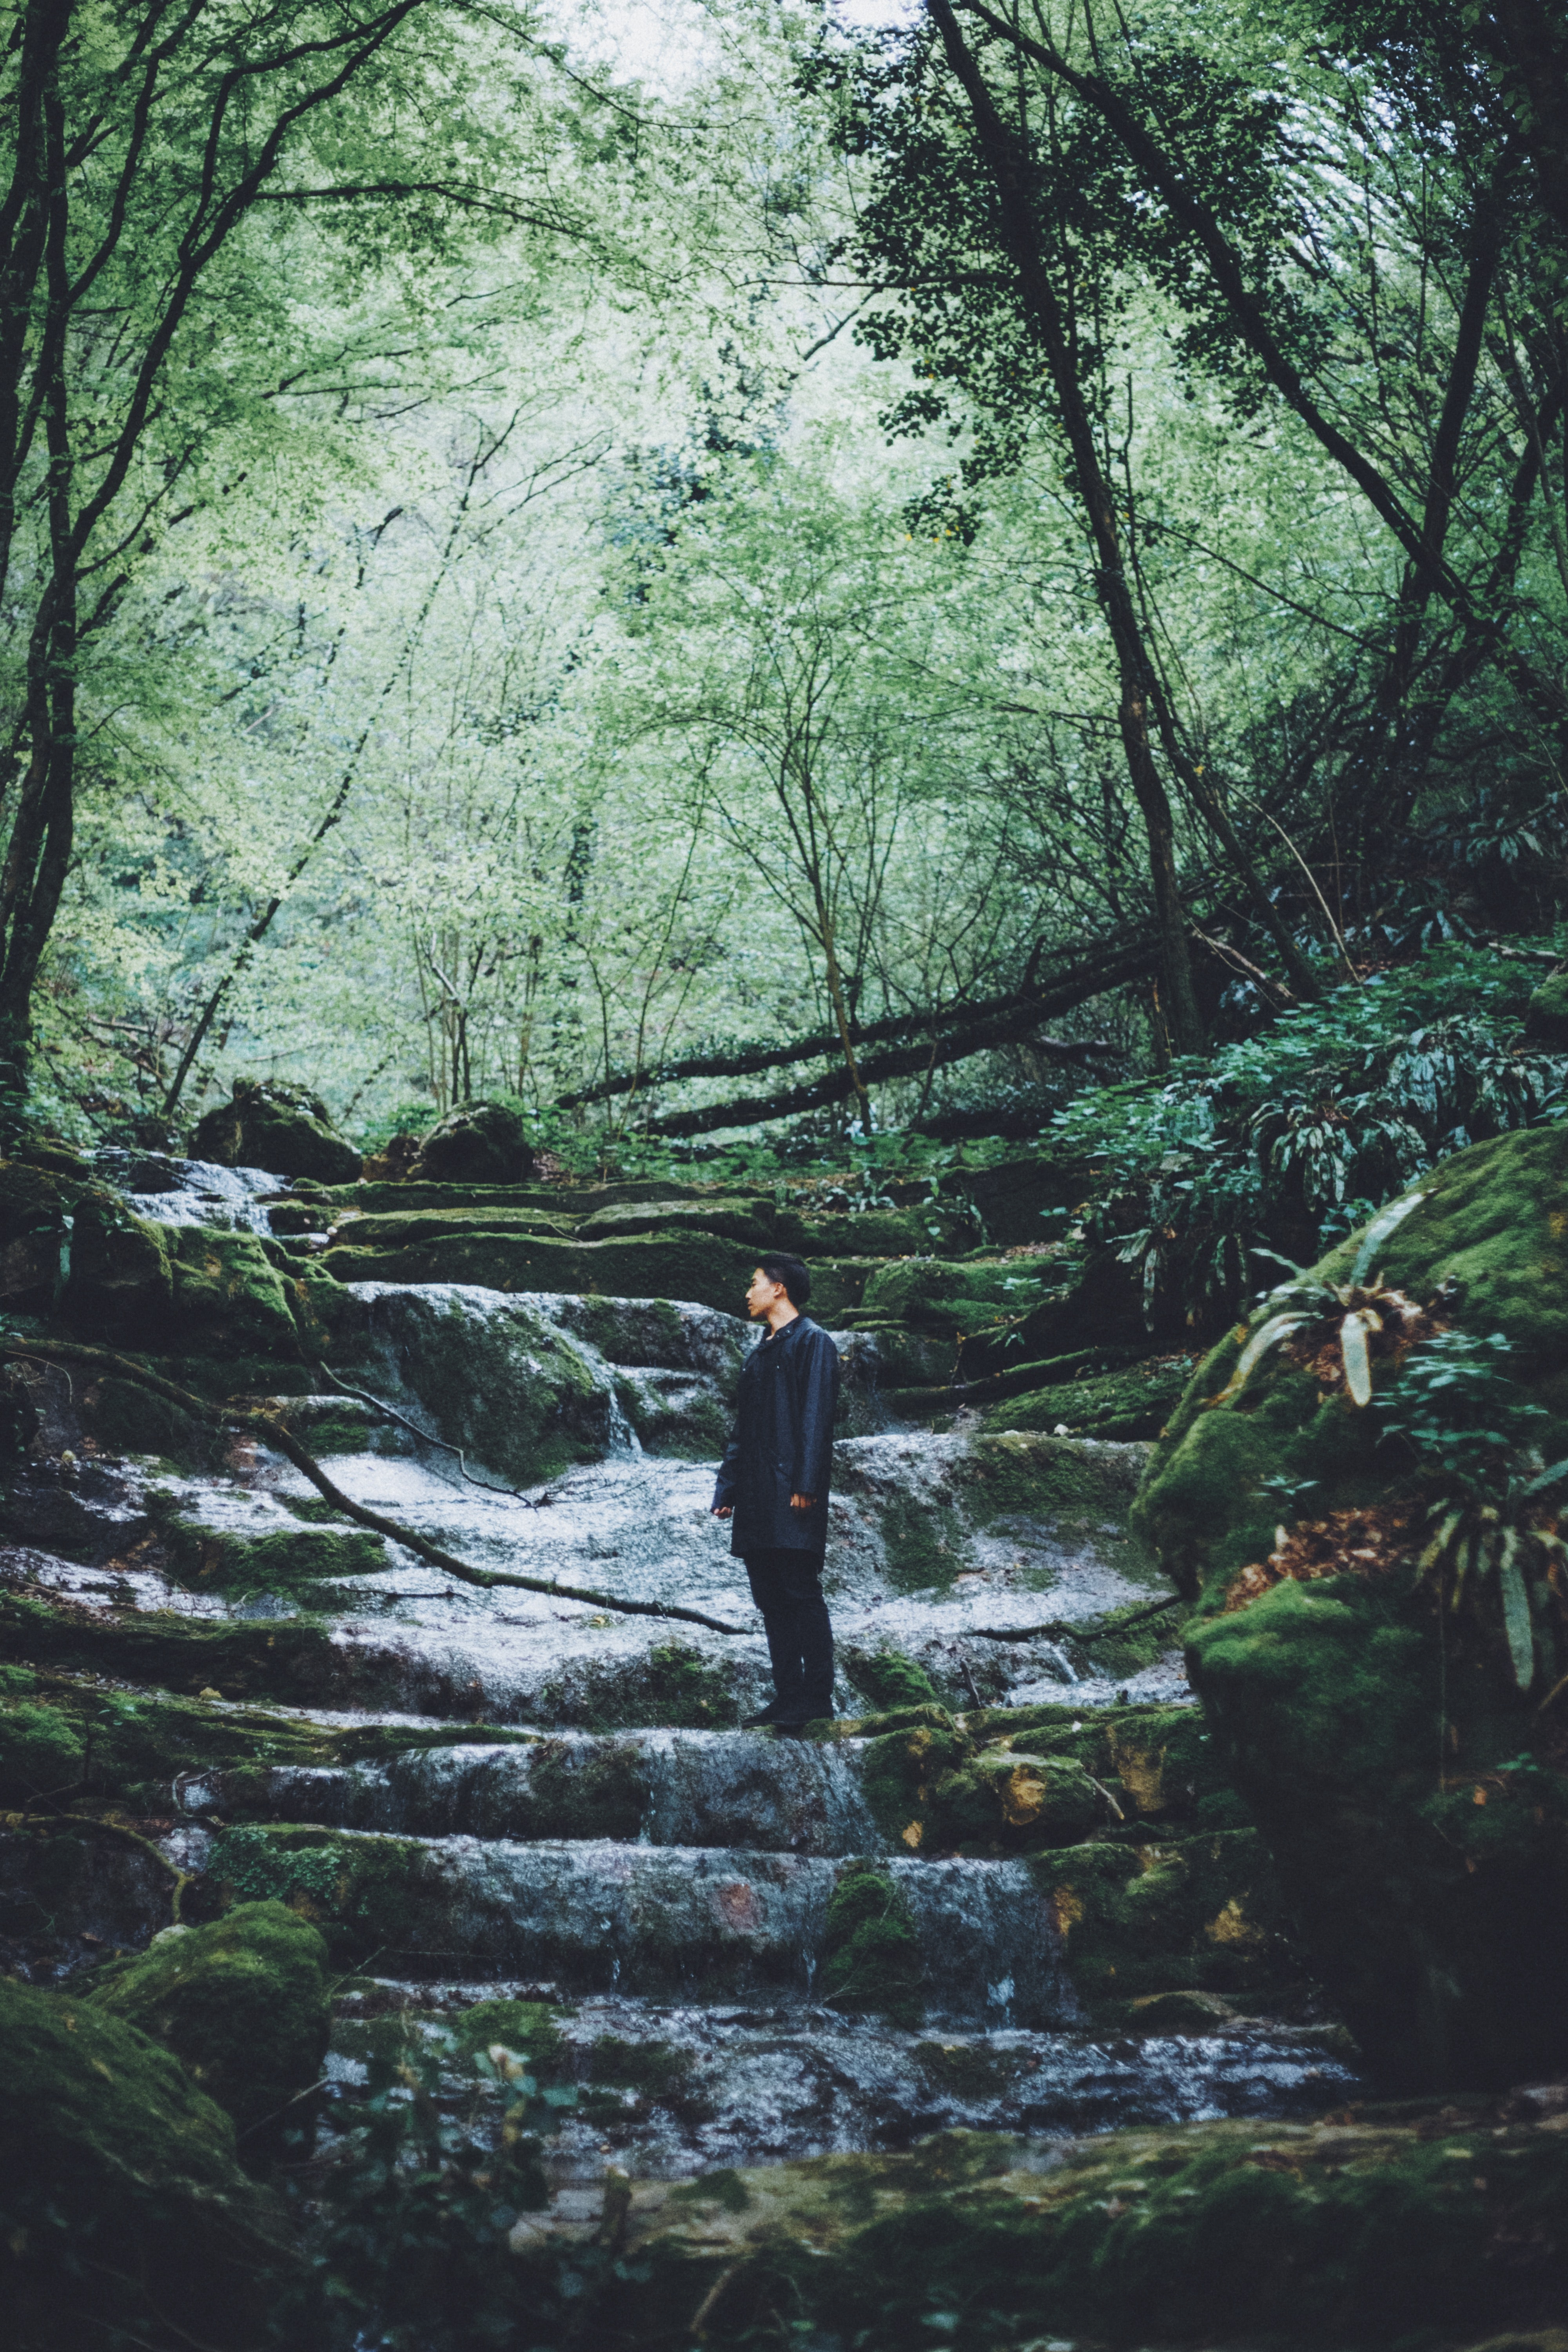 A young man standing on a rocky bed of a cascading stream in a forest